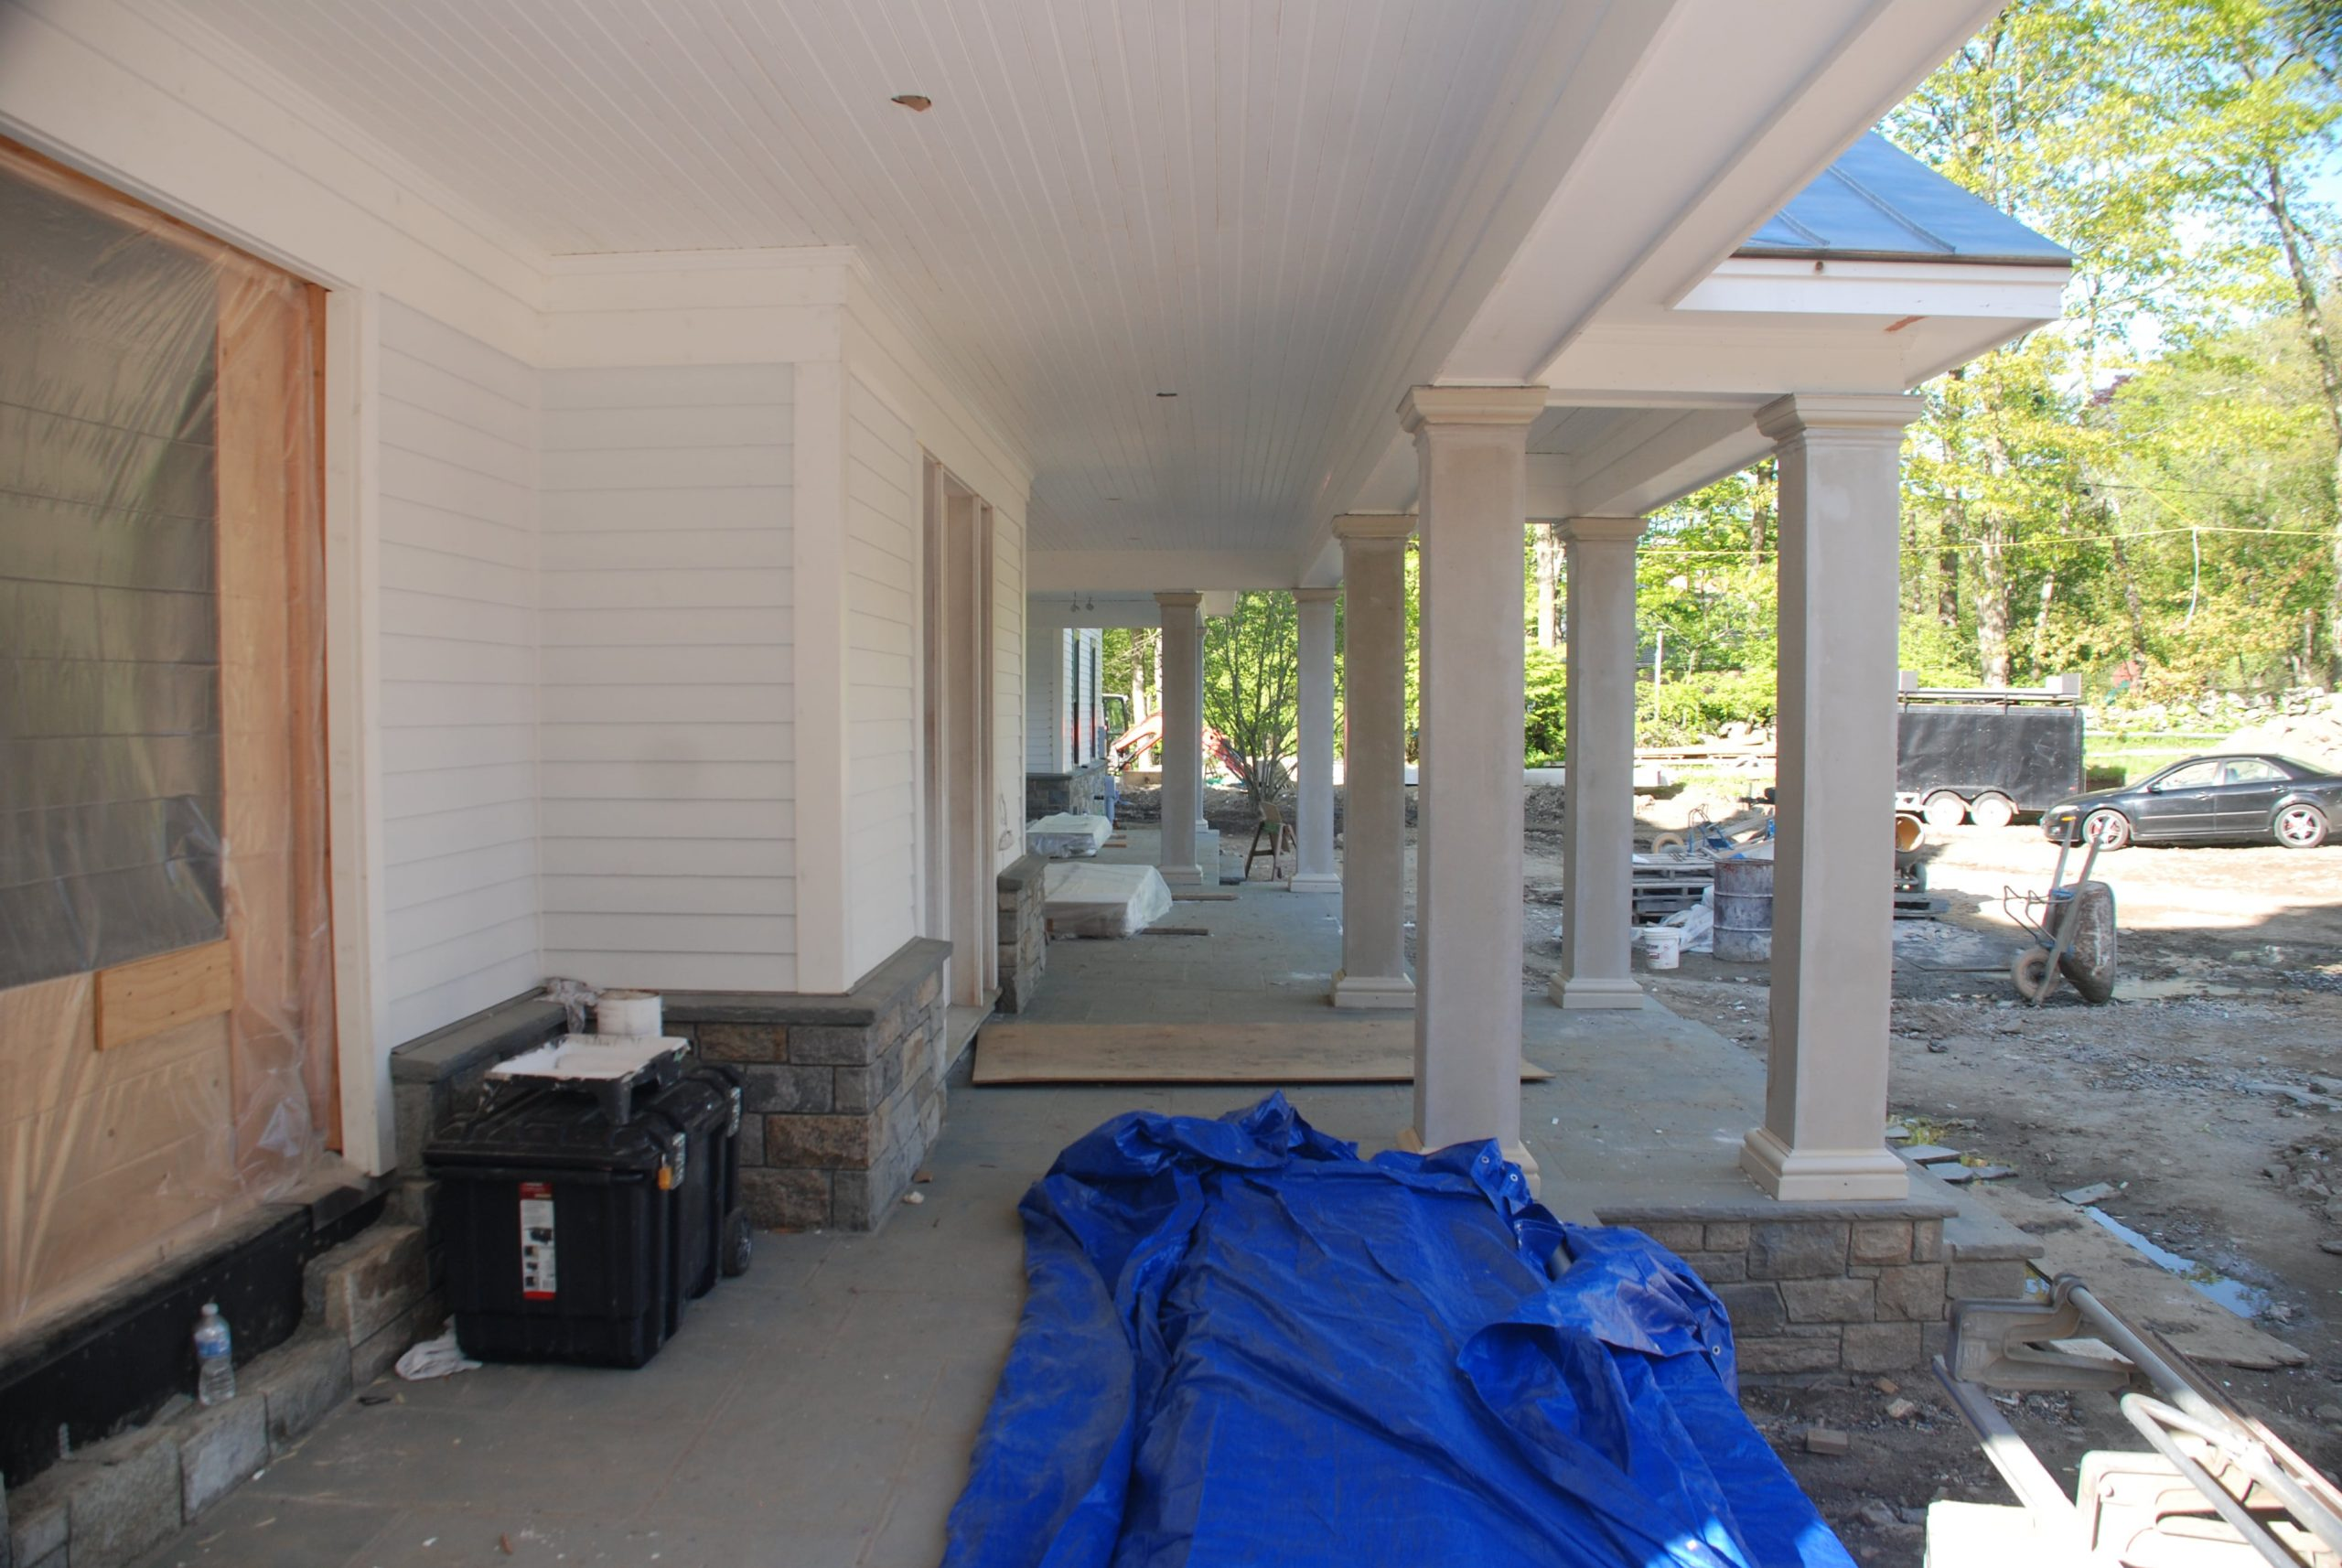 8 greenwich ct home construction in progress